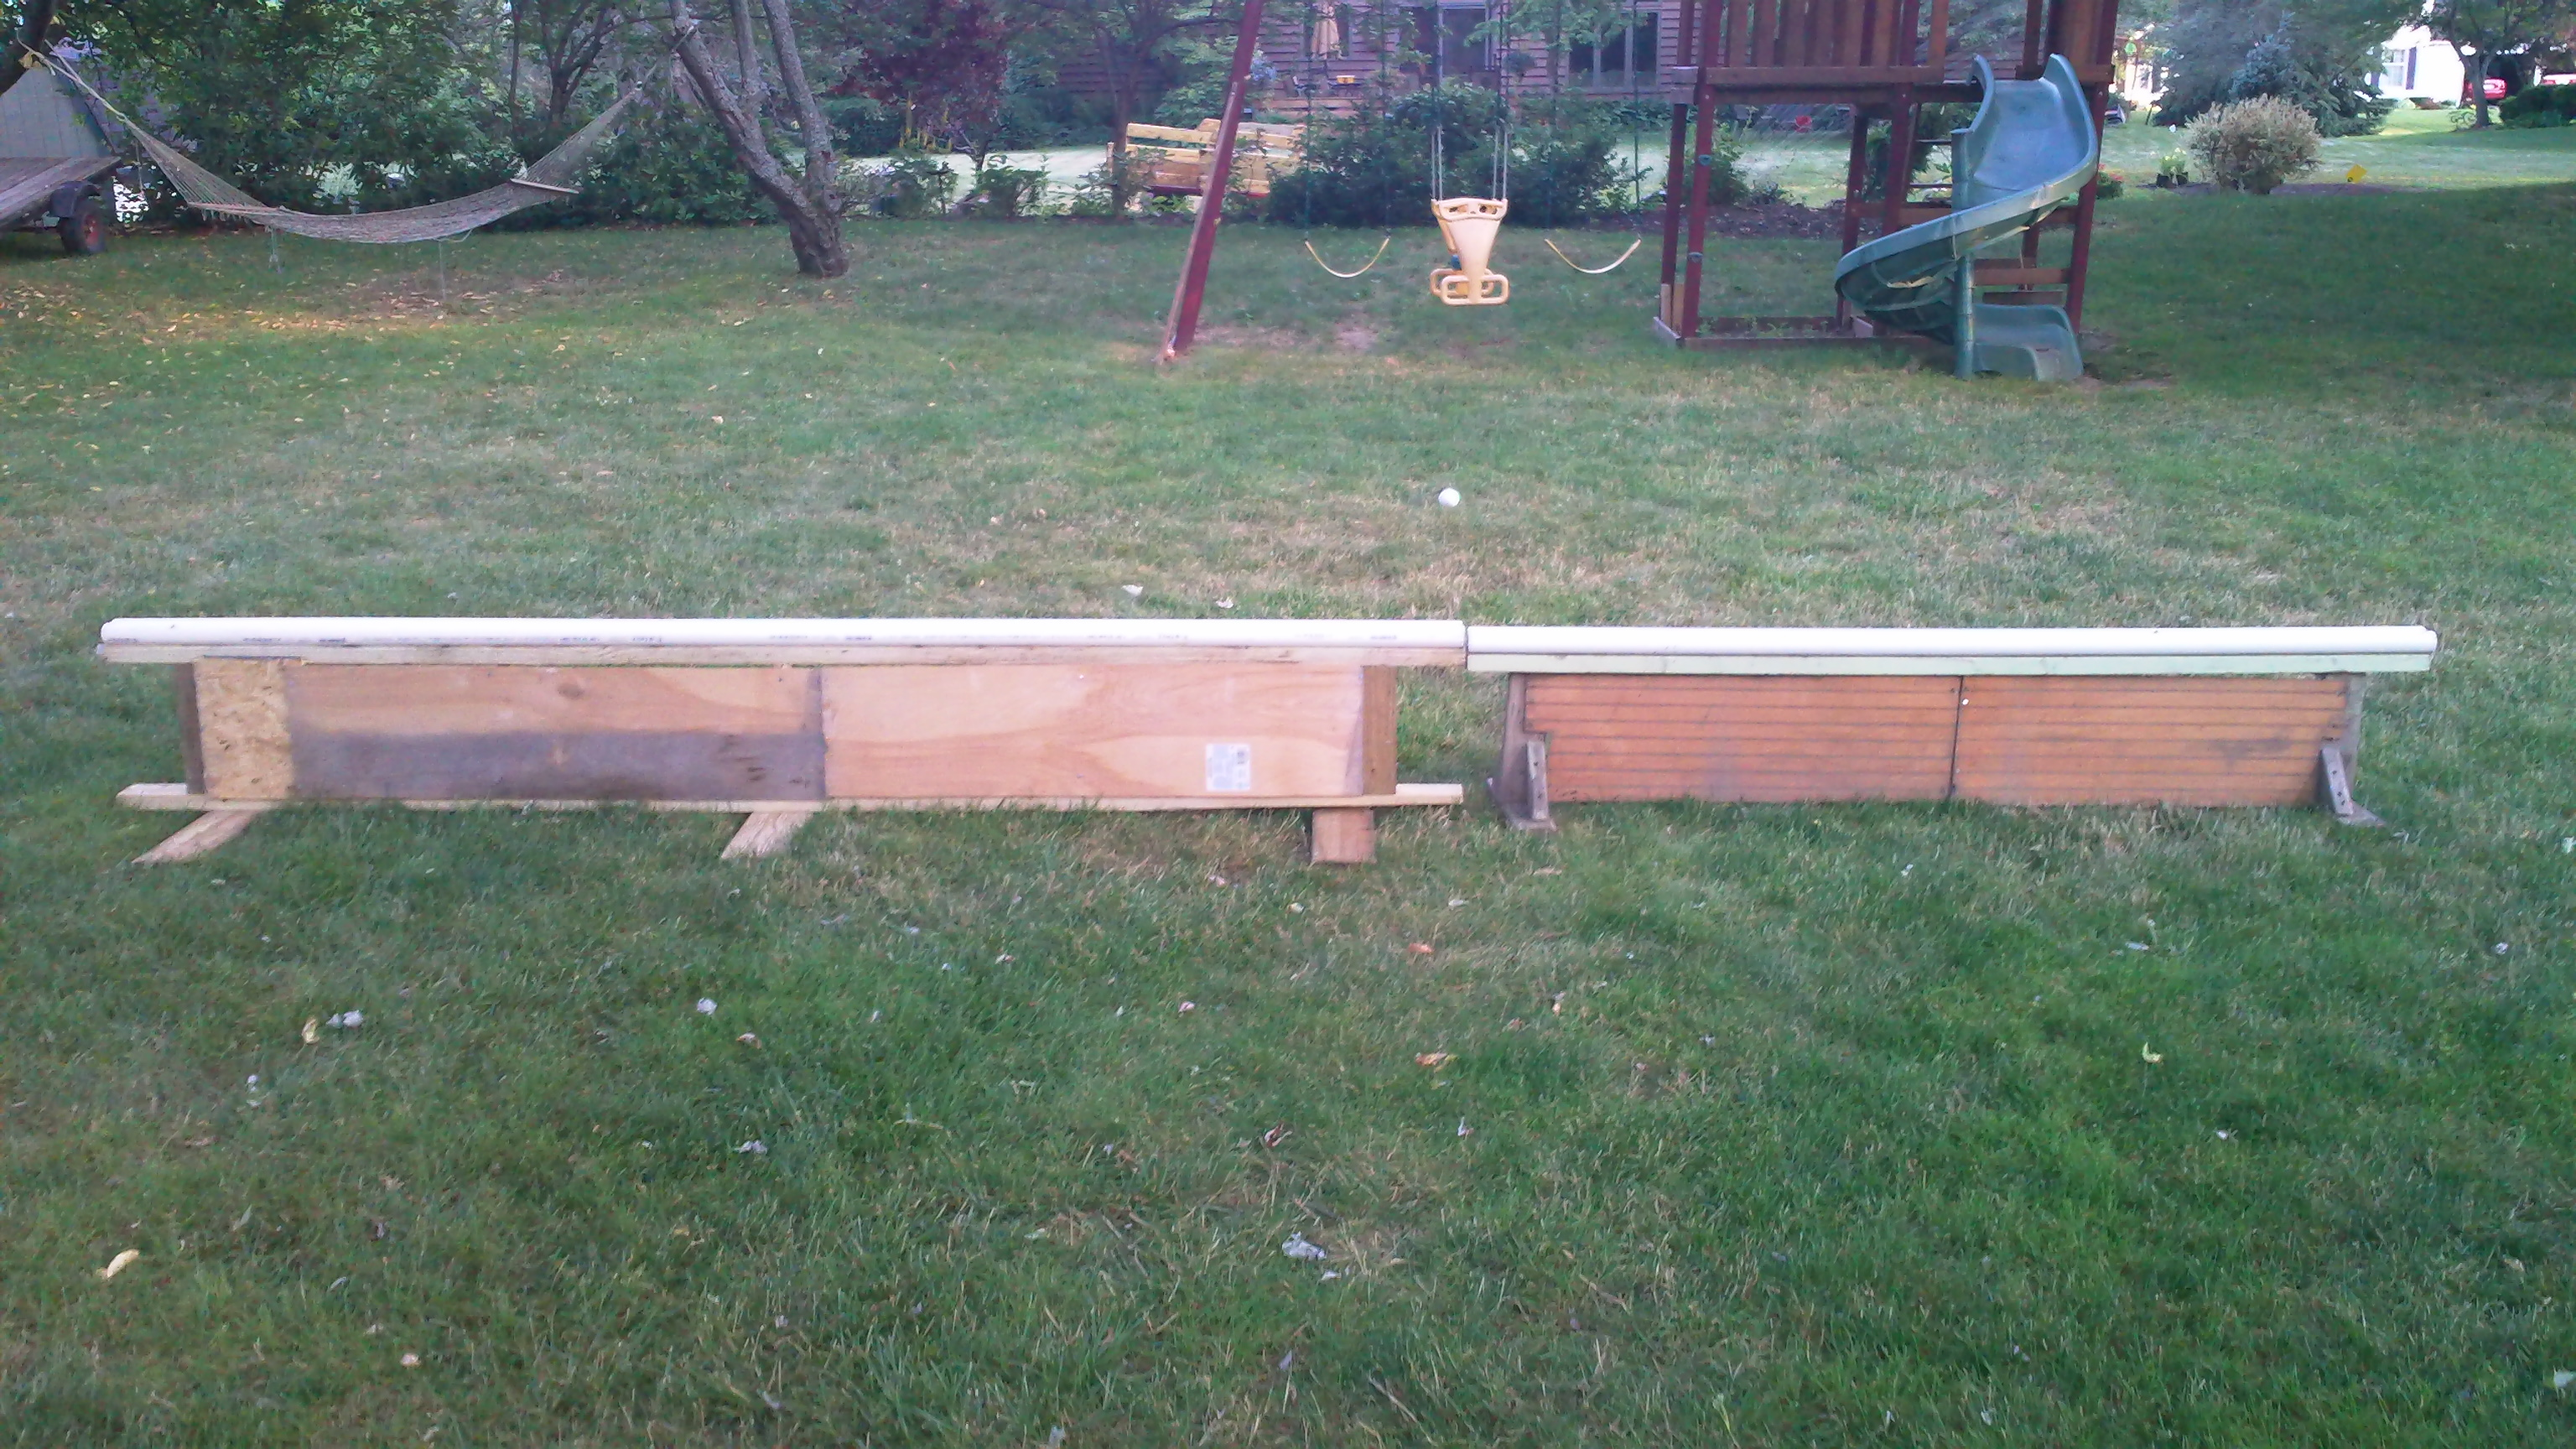 New 10' rail on left, old 7' rail on right